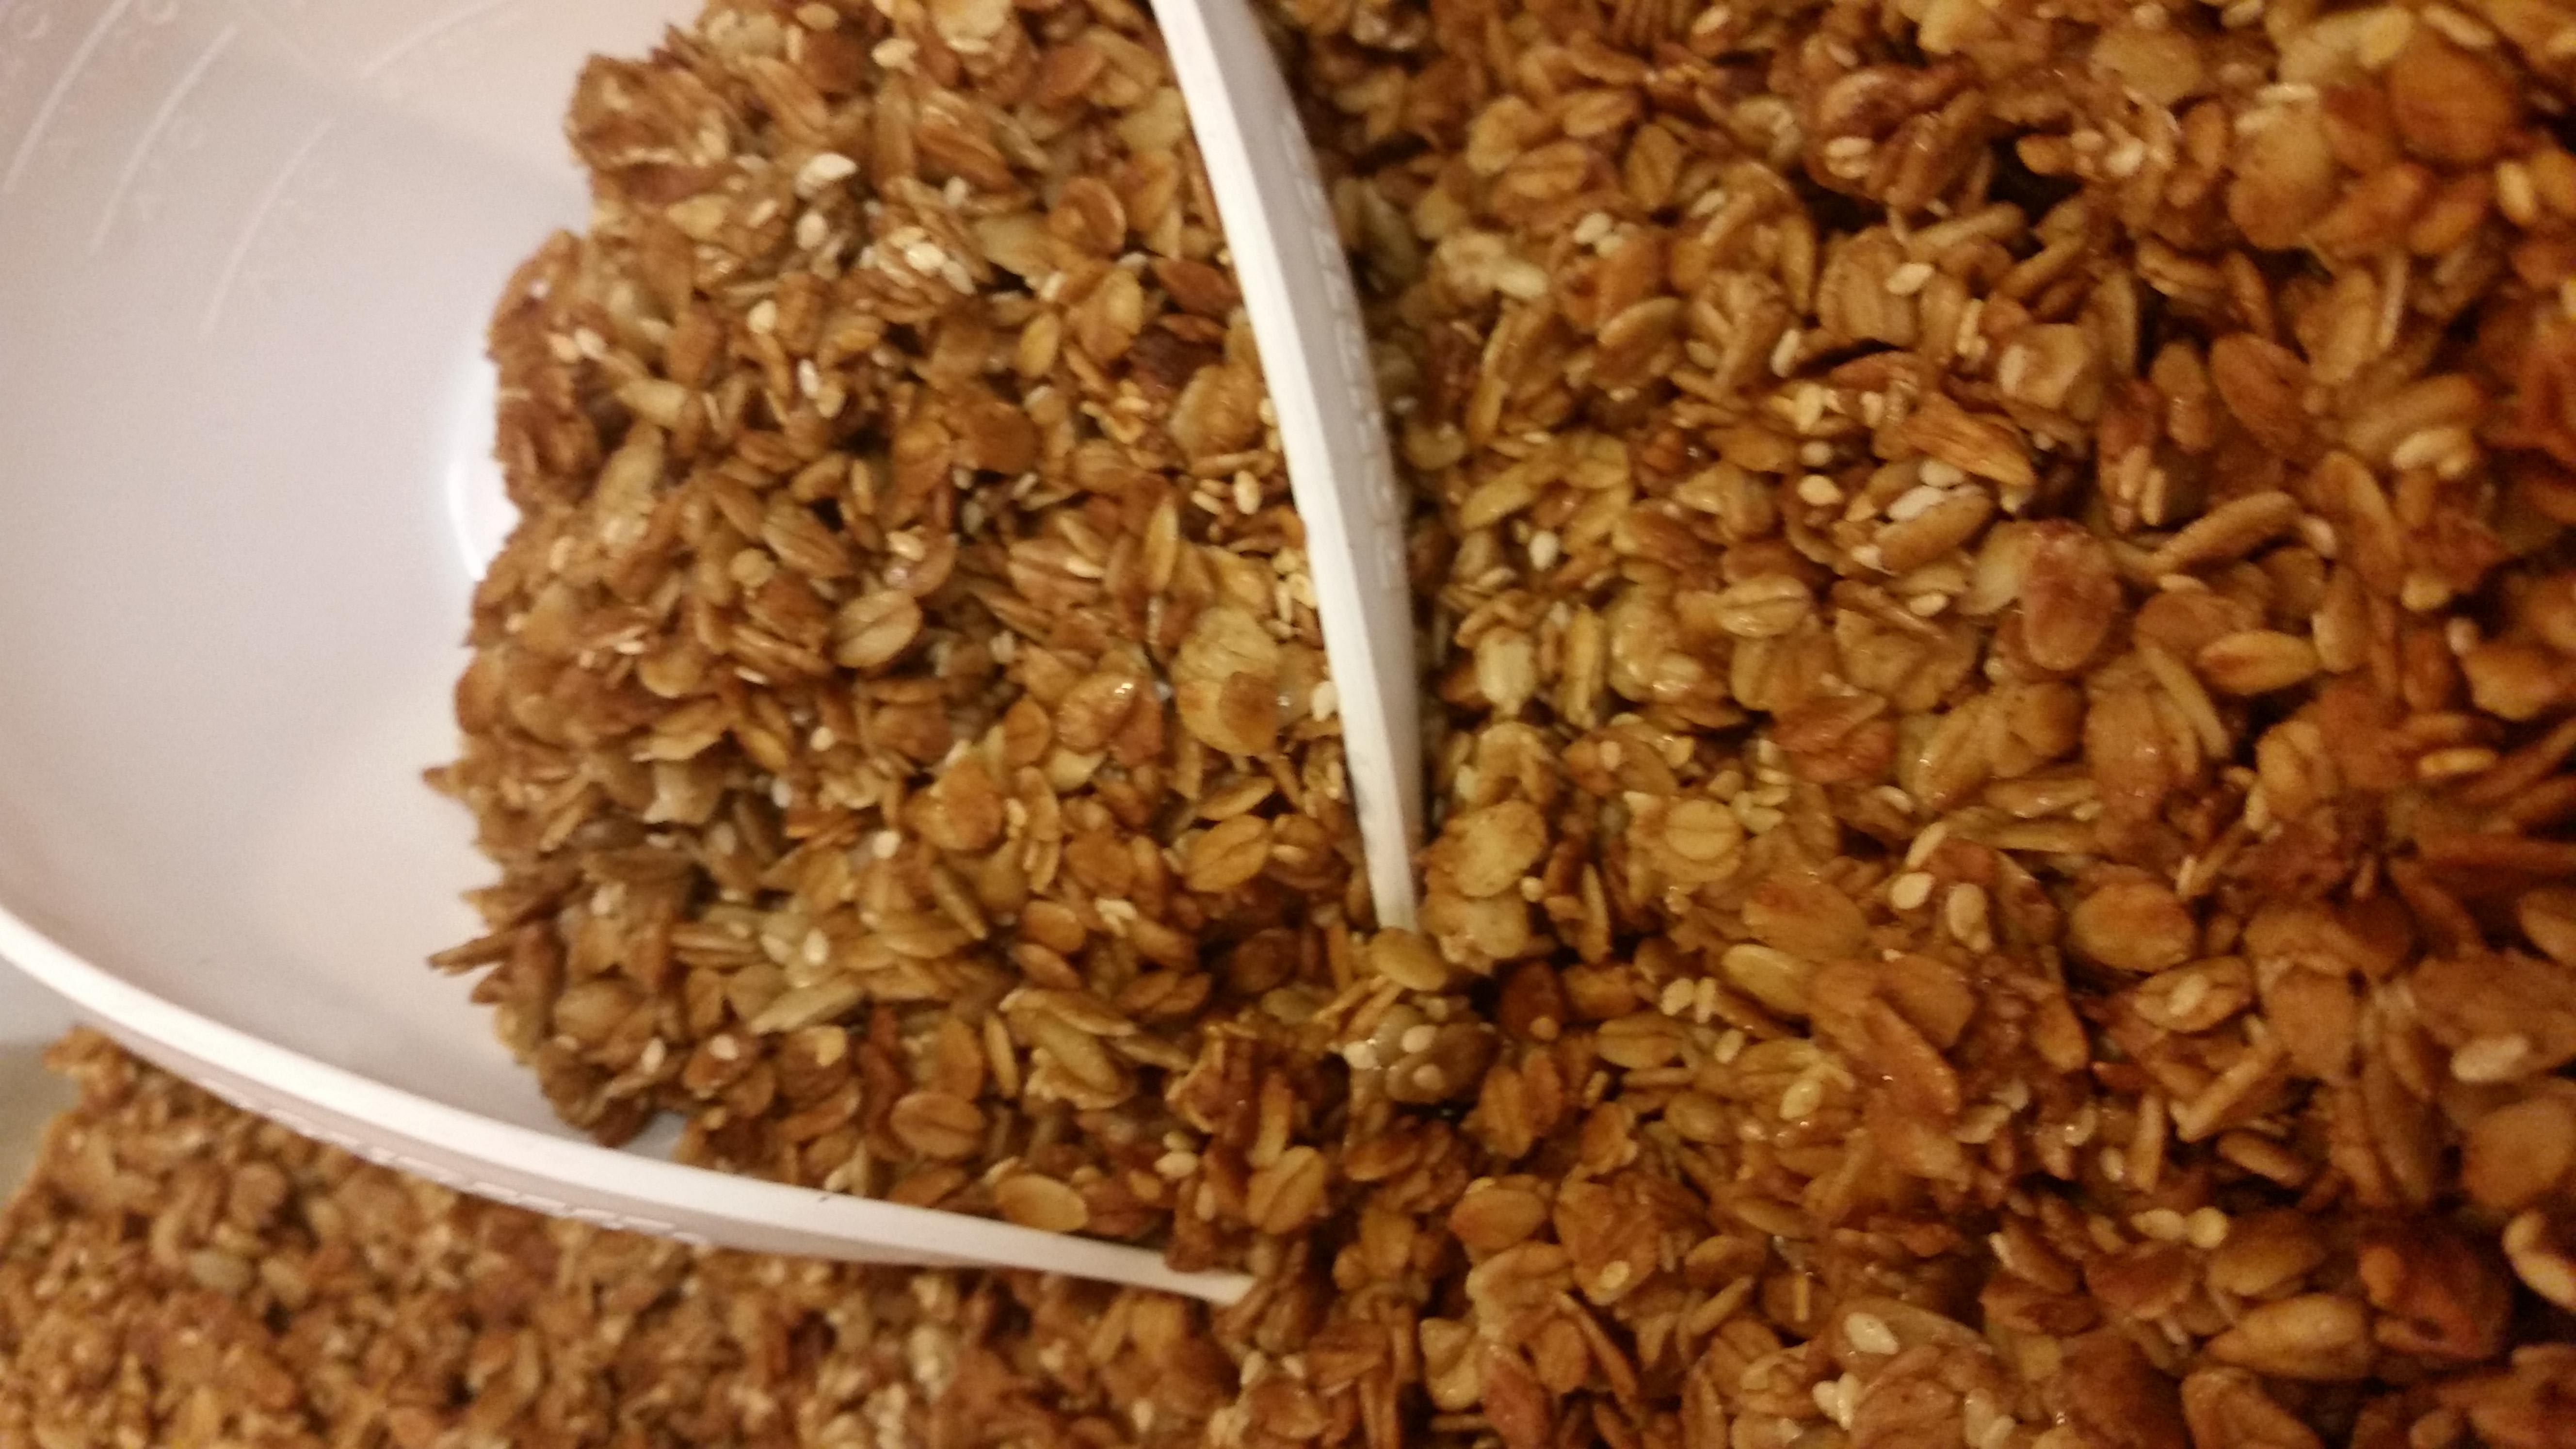 Homemade Simply Granola, Gluten Free at South Street Creamery Cafe